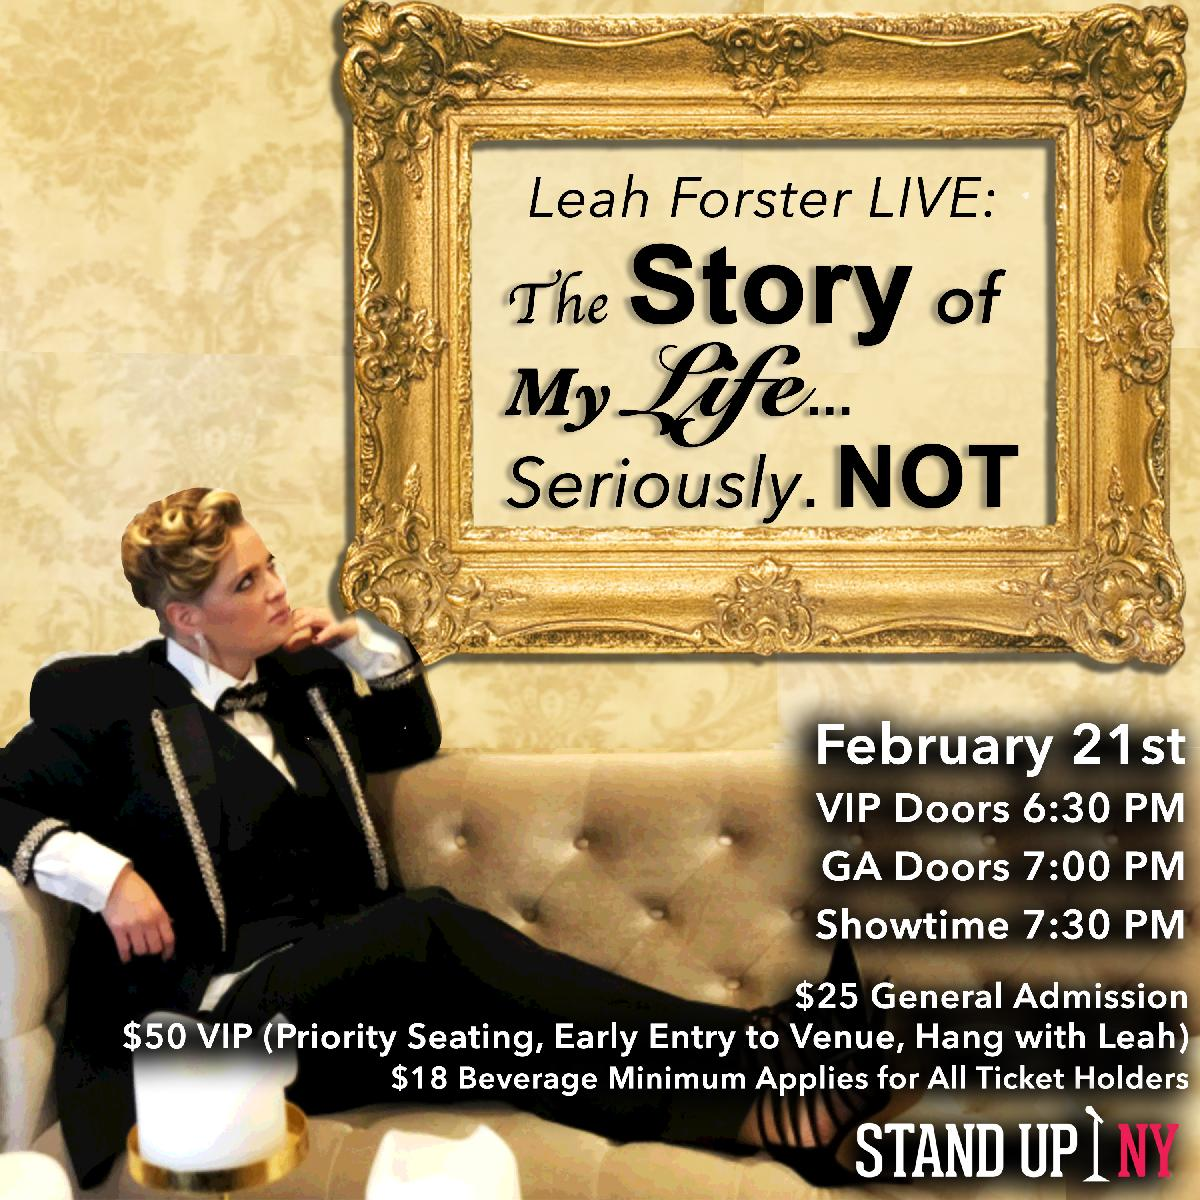 LEAH FORSTER LIVE: The Story of My Life    Seriously  NOT